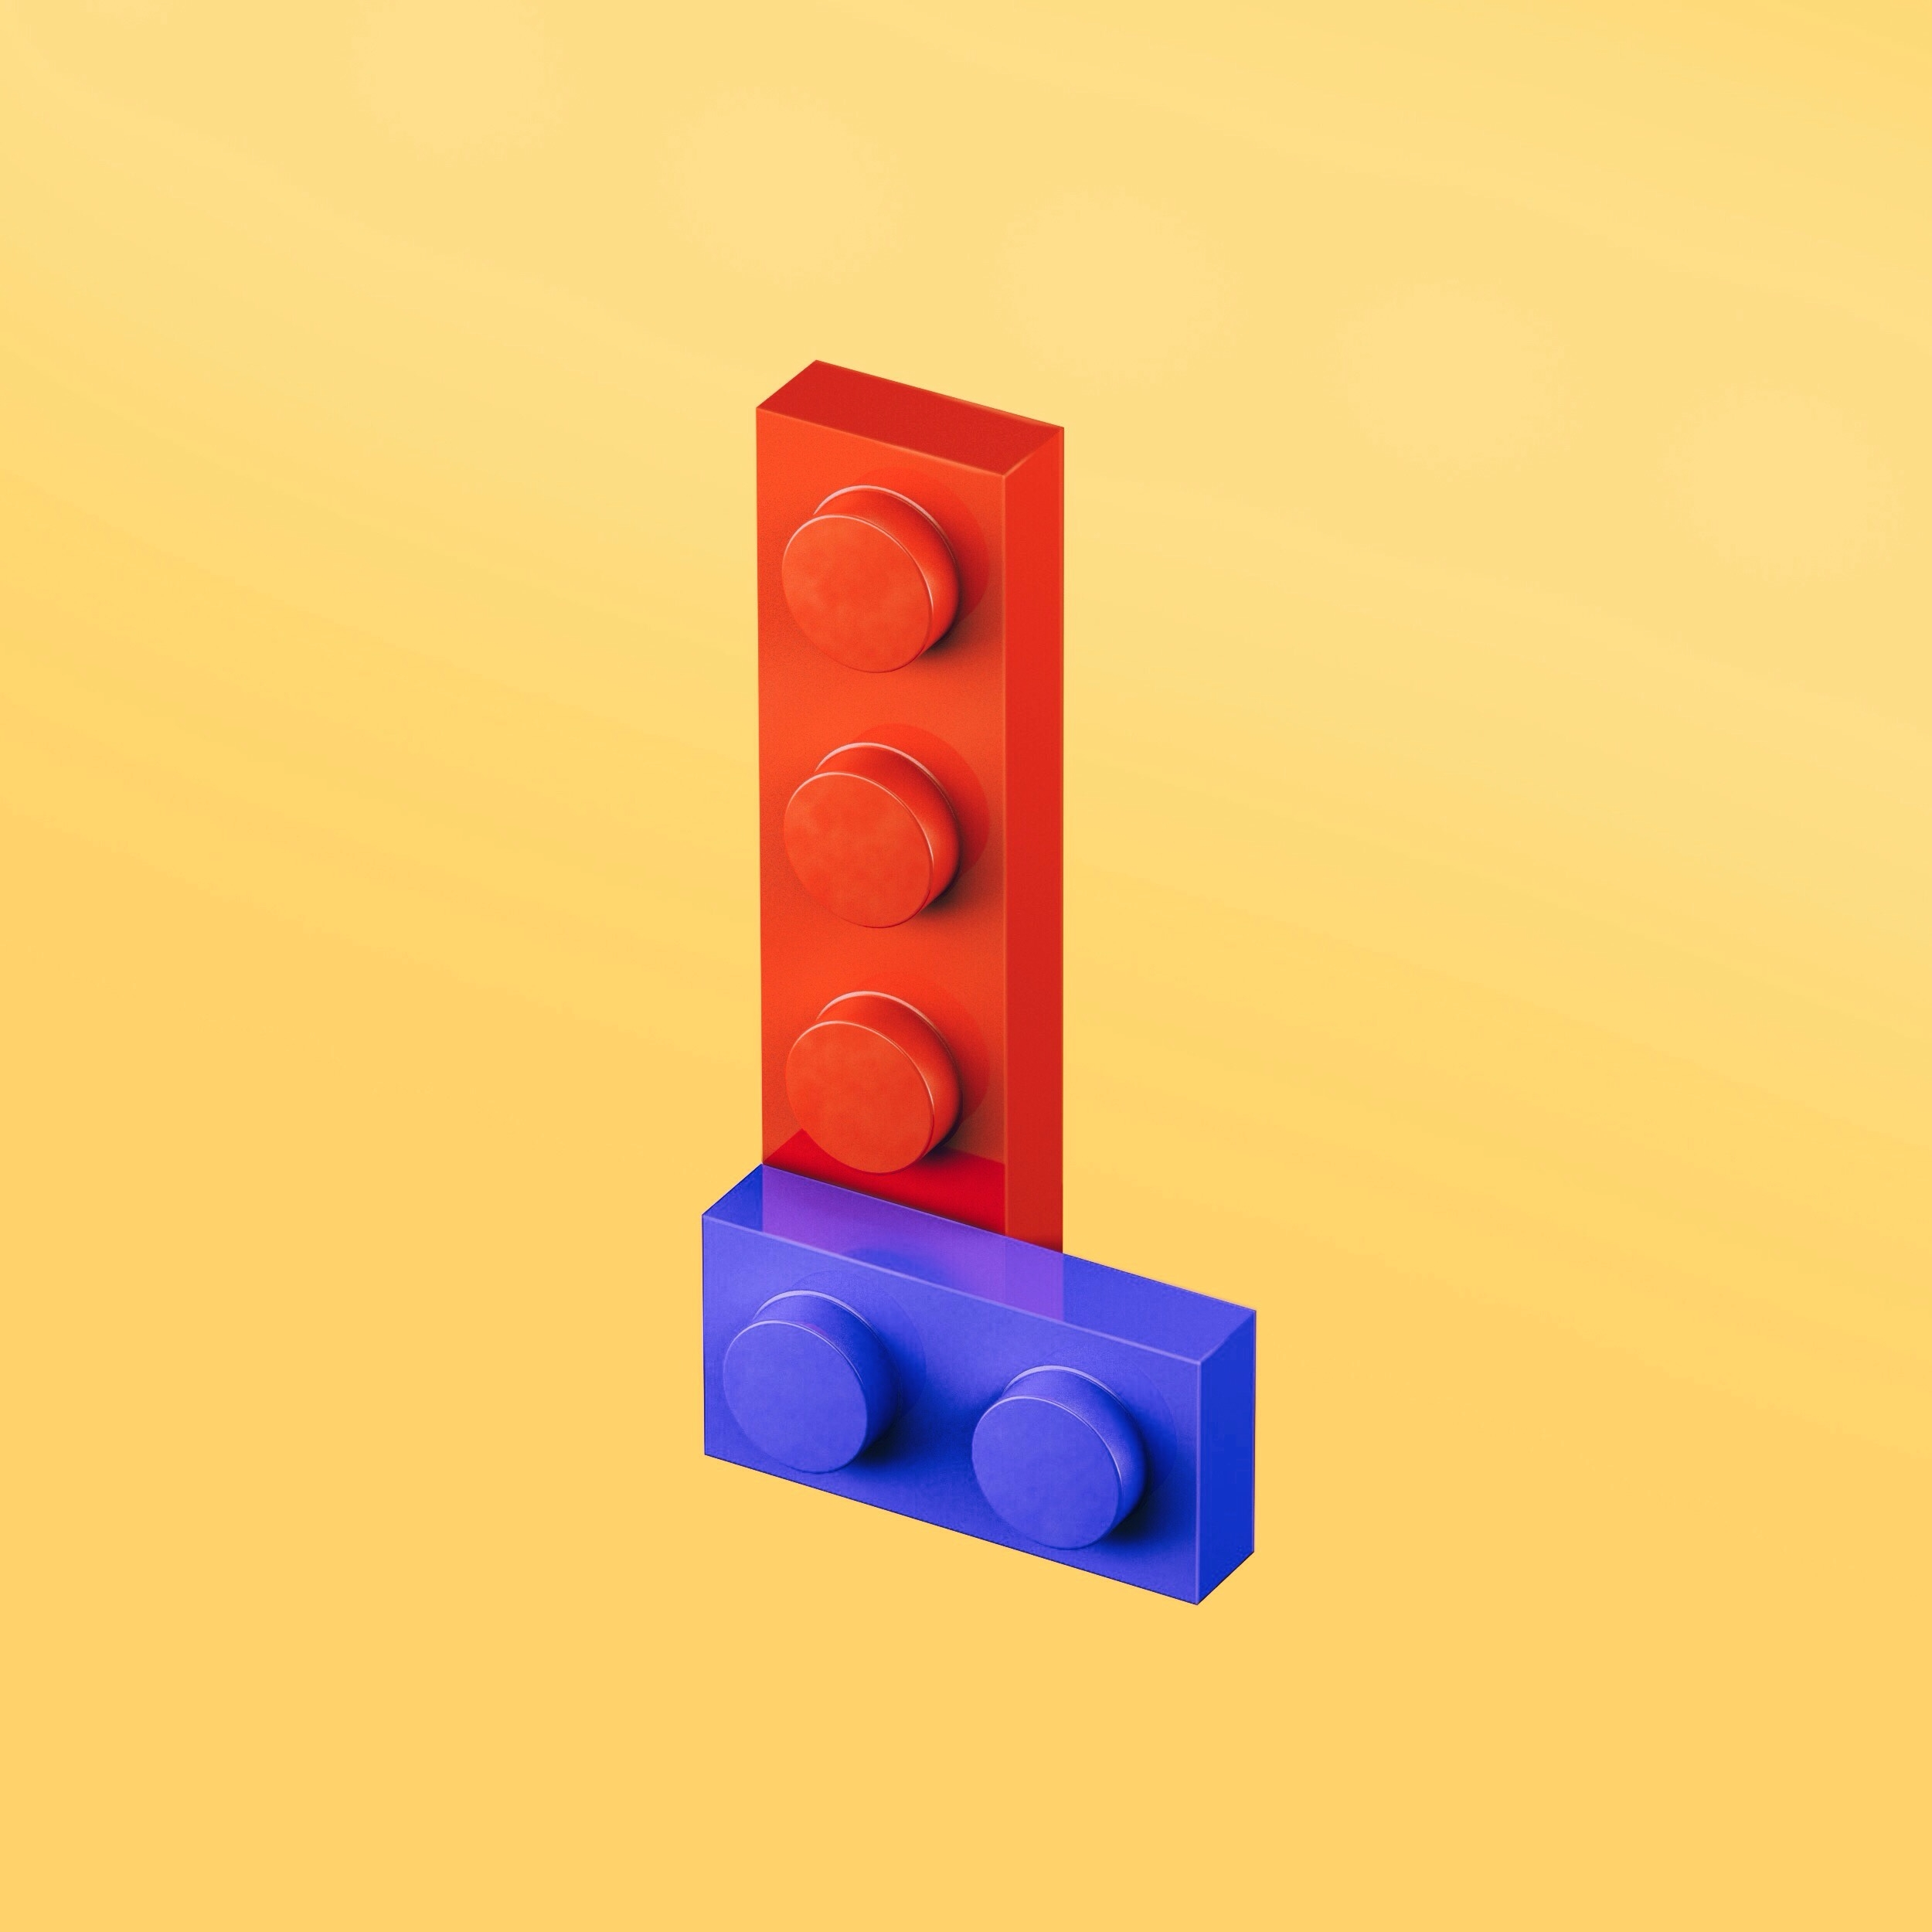 Lego - 36daysoftype, 36days_l, 36daysoftype04 - shoejaat | ello